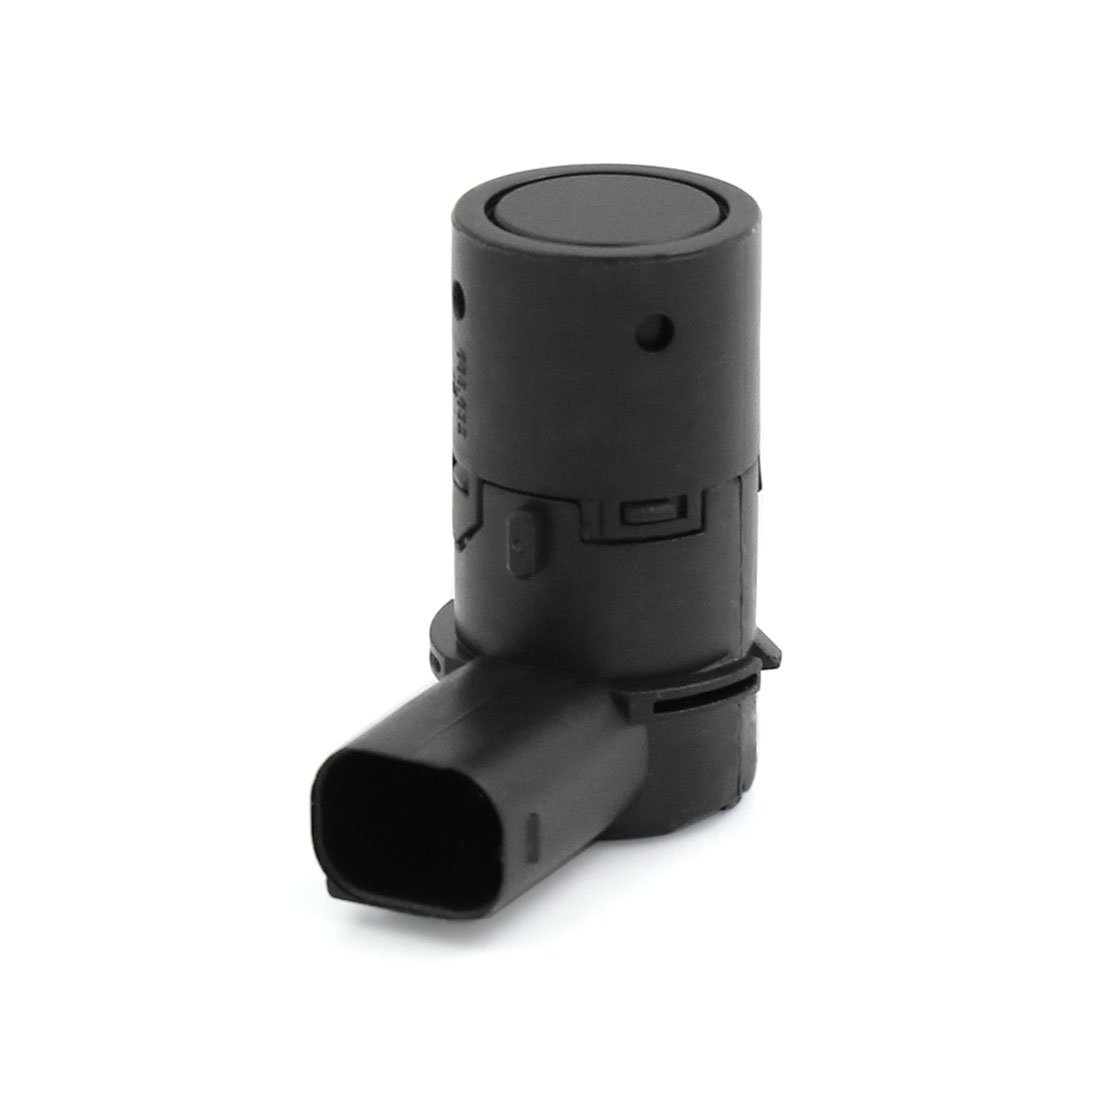 uxcell a16121300ux0606 Parking Aid Sensor